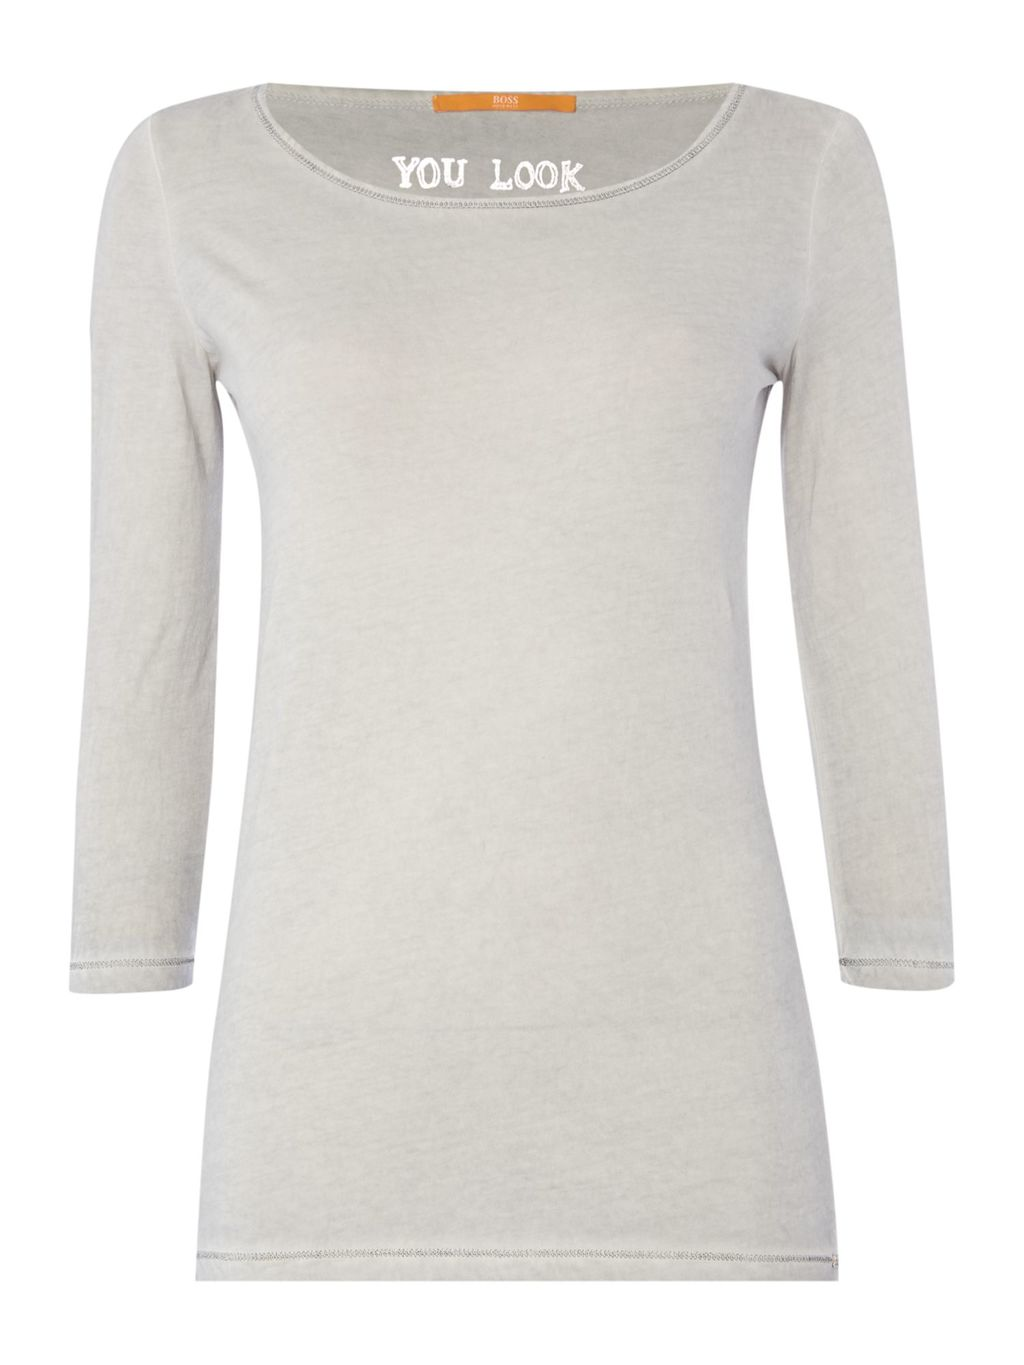 Jersey Top With 3/4 Sleeve, Charcoal - pattern: plain; style: t-shirt; predominant colour: mid grey; occasions: casual; length: standard; neckline: scoop; fibres: cotton - stretch; fit: body skimming; sleeve length: 3/4 length; sleeve style: standard; texture group: jersey - clingy; pattern type: fabric; season: a/w 2015